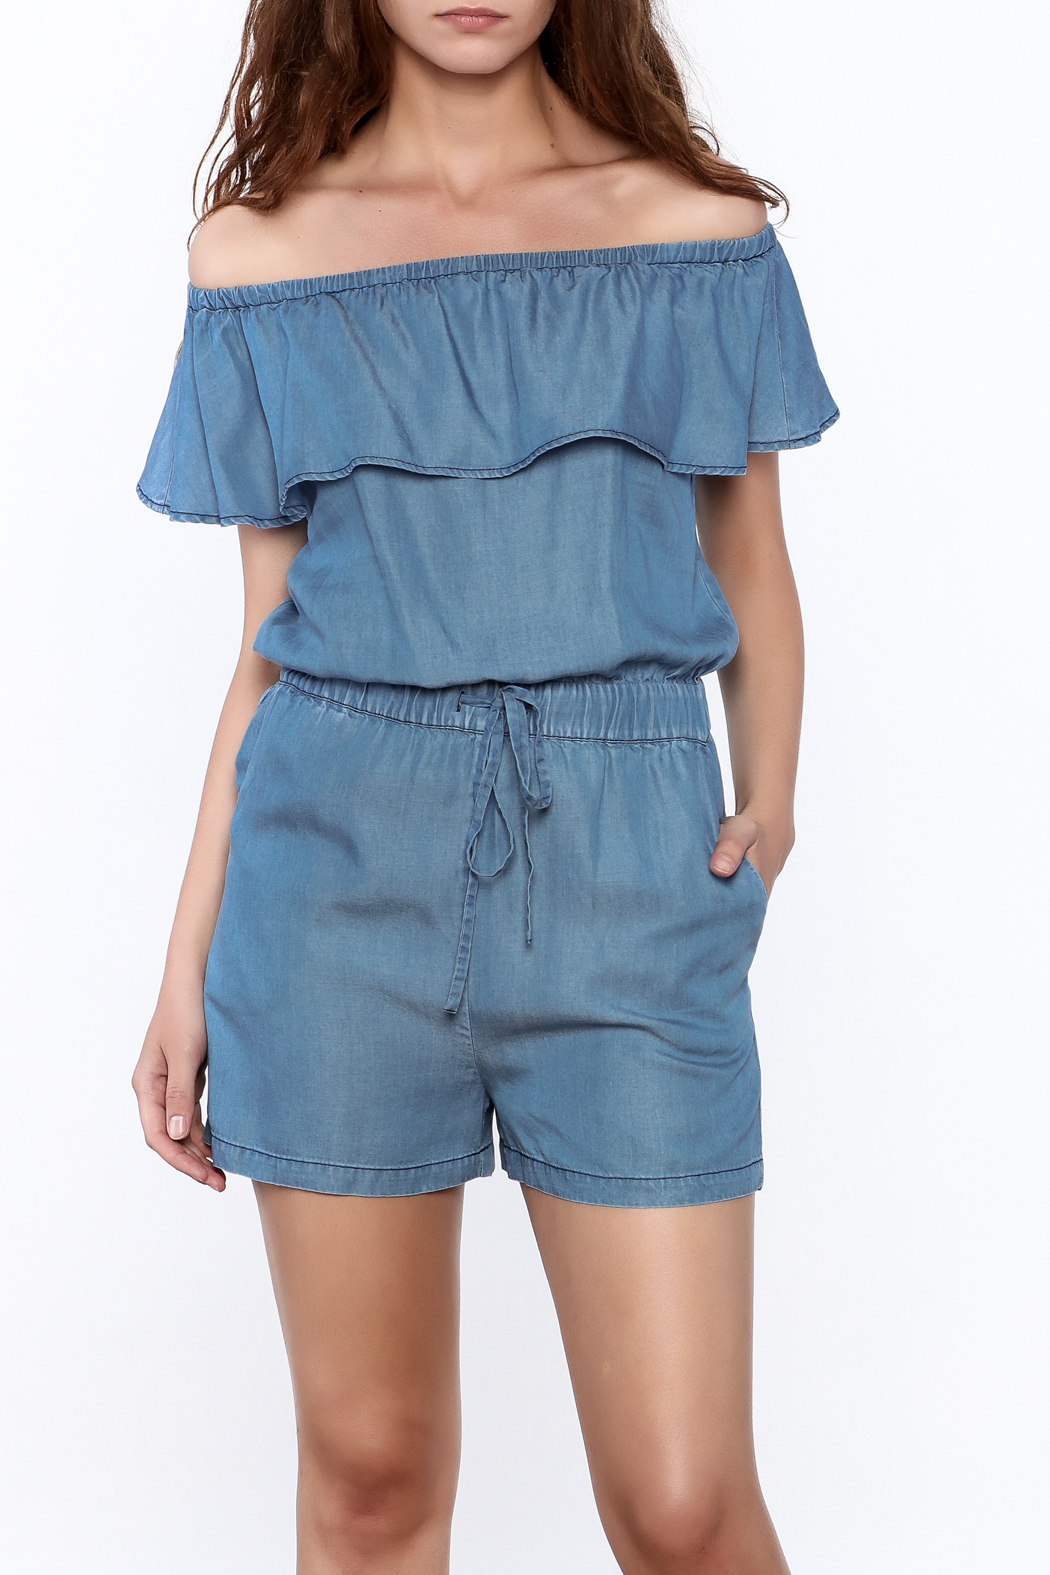 69a6bd6930d PPLA Off Shoulder Denim Romper from Texas by Stephanie s Stuff ...